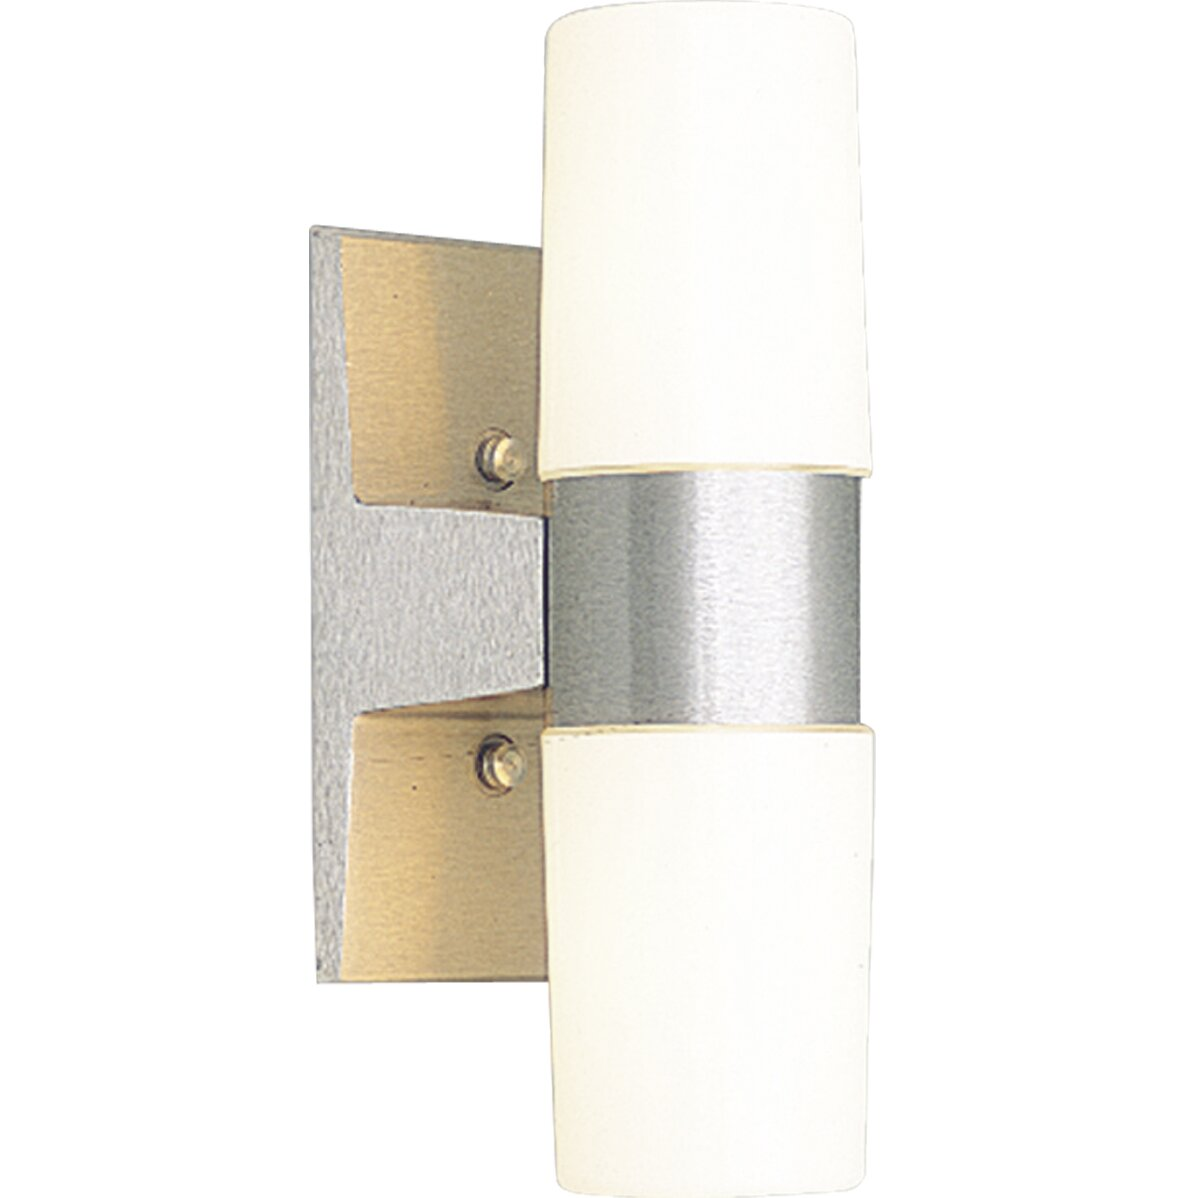 Wall Sconces At Wayfair : Progress Lighting 2 Light Outdoor Sconce & Reviews Wayfair